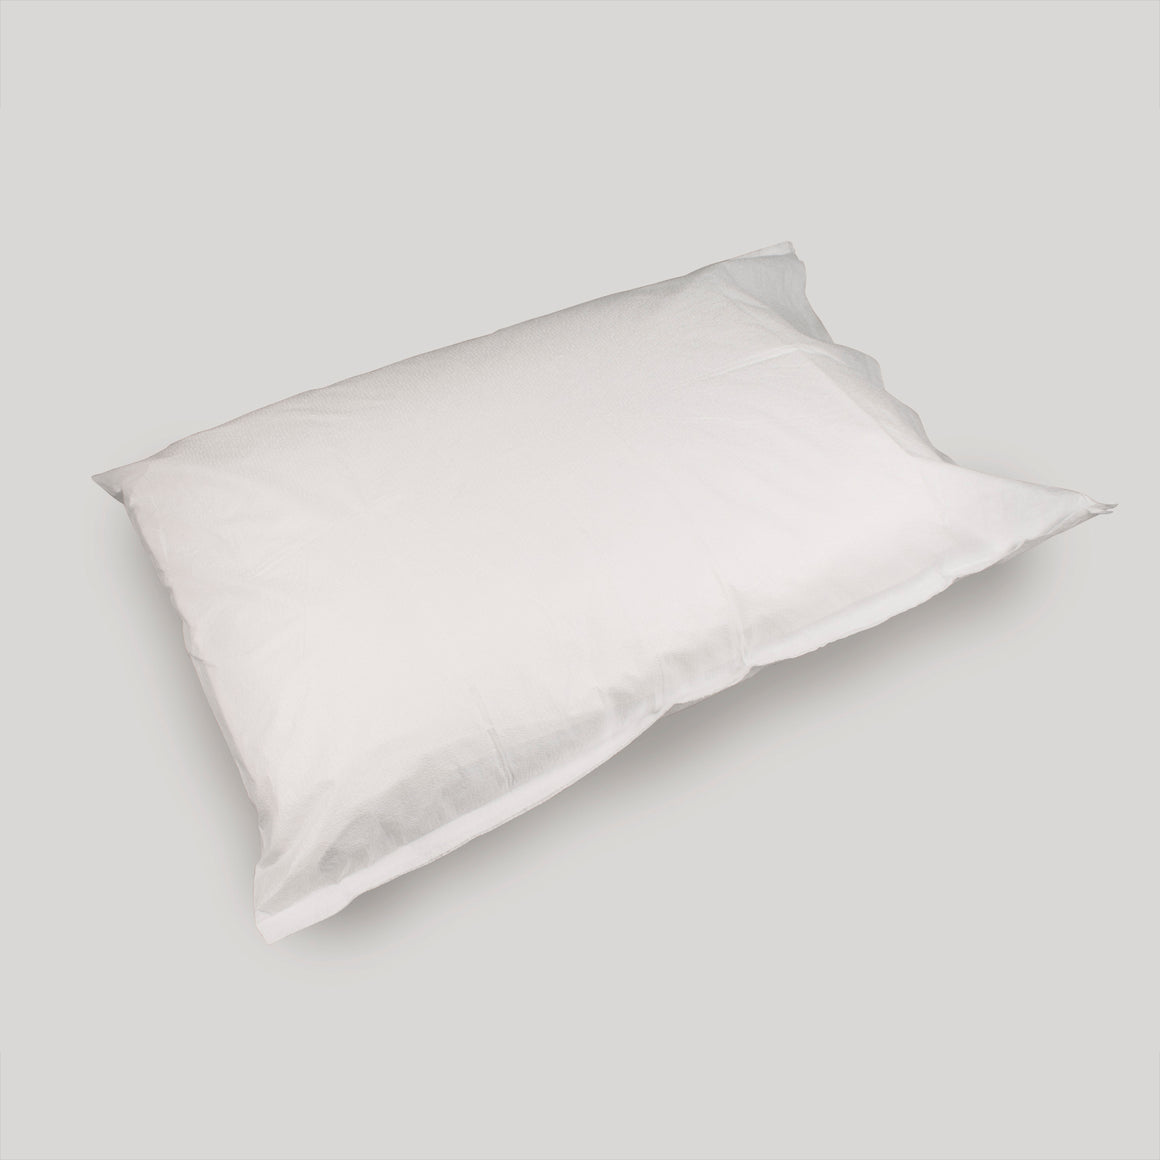 Dynarex #8161 Disposable Pillowcases 21x30 - 100 per case